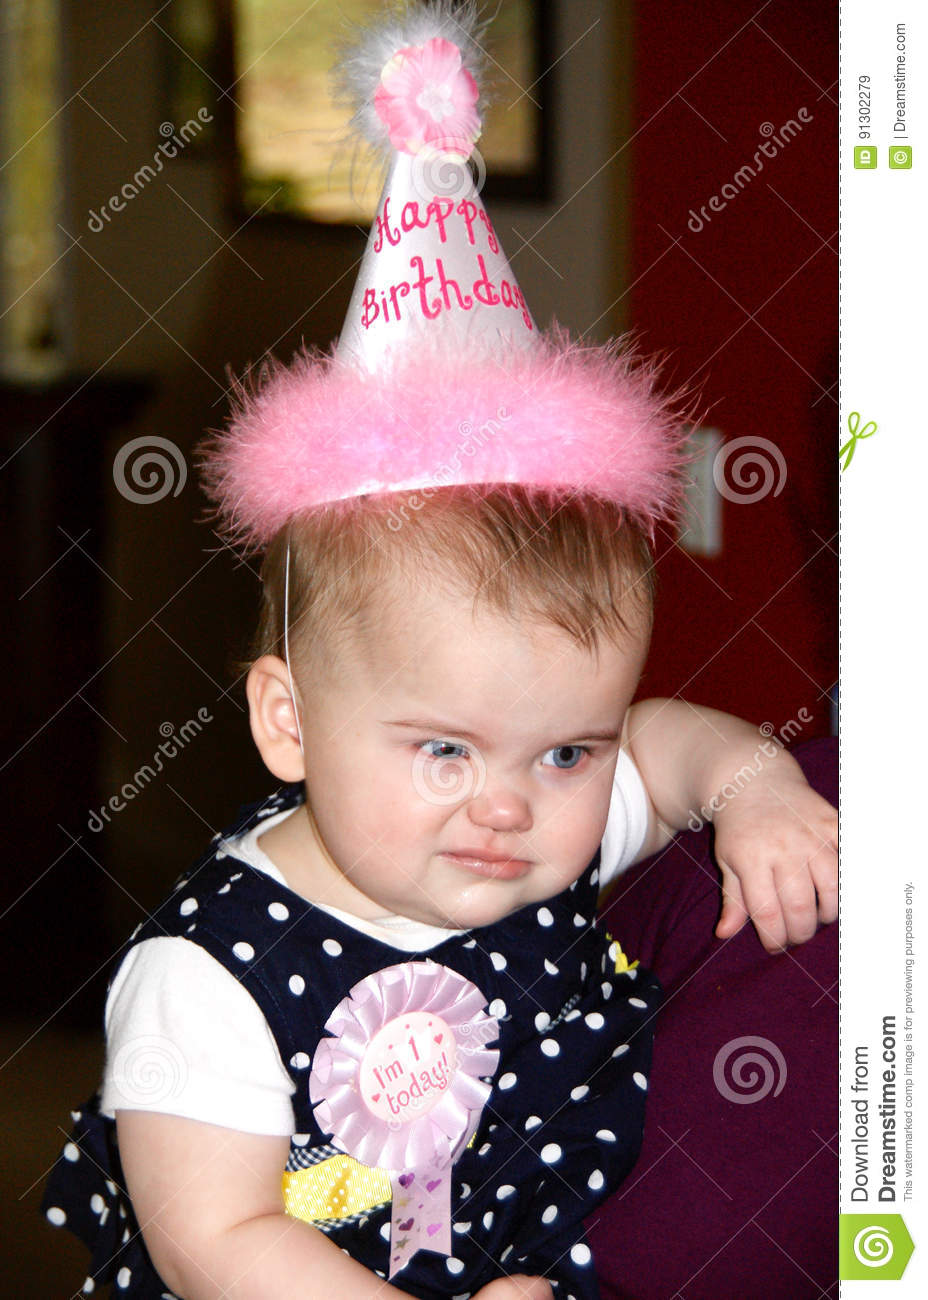 A Baby Girl Is Wearing Happy Birthday Hat And Making Funny Facial Expression During Her First Party Face Showing Anger Or Disgust